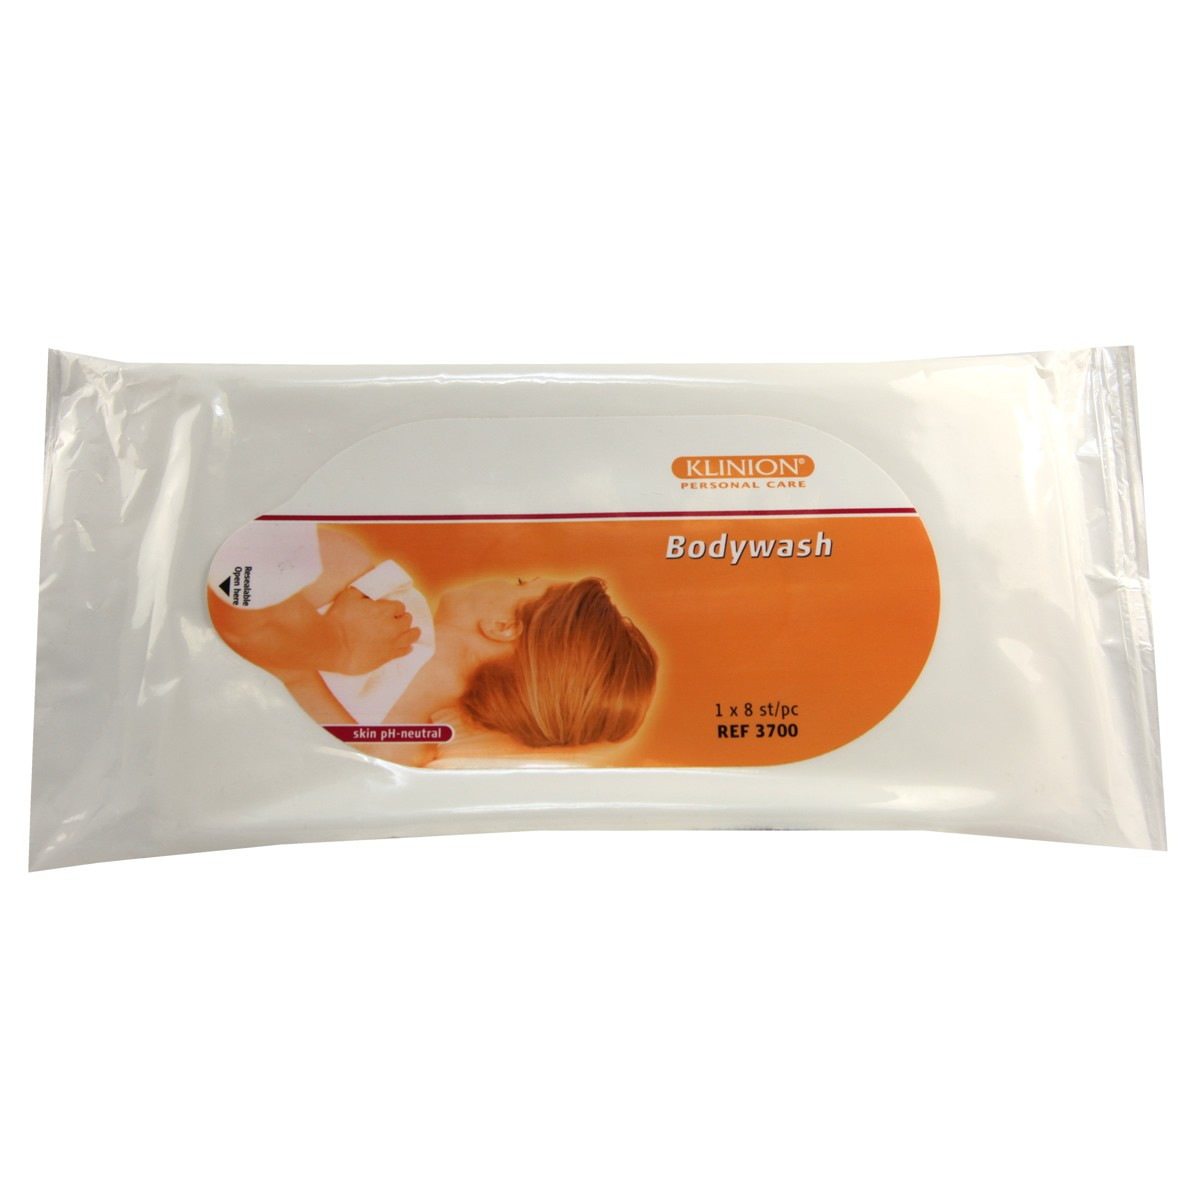 Klinion Body Wash Wipes